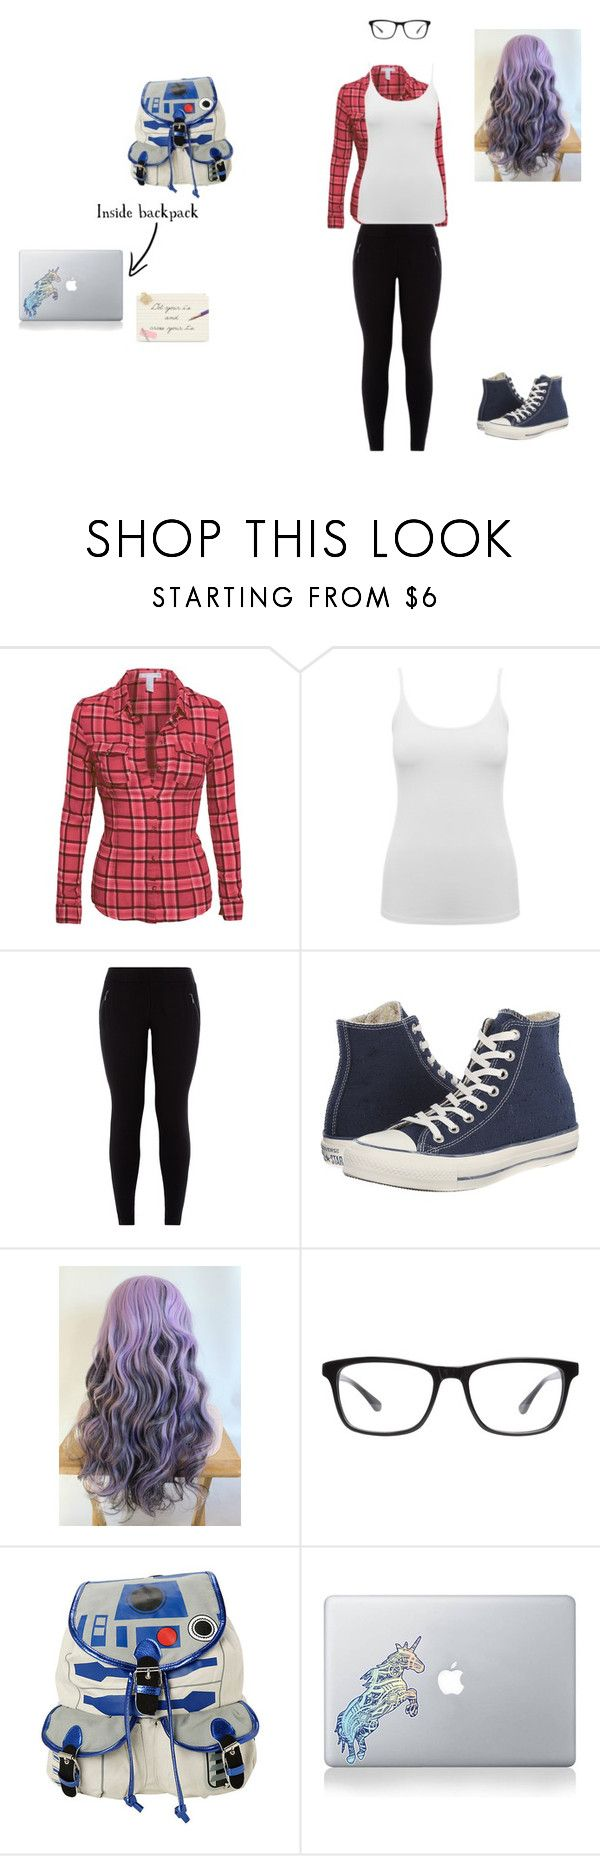 """""""Earth to Echo"""" by foreverdisney-892 ❤ liked on Polyvore featuring M&Co, New Look, Converse, Joseph Marc, R2, Vinyl Revolution and Kate Spade"""